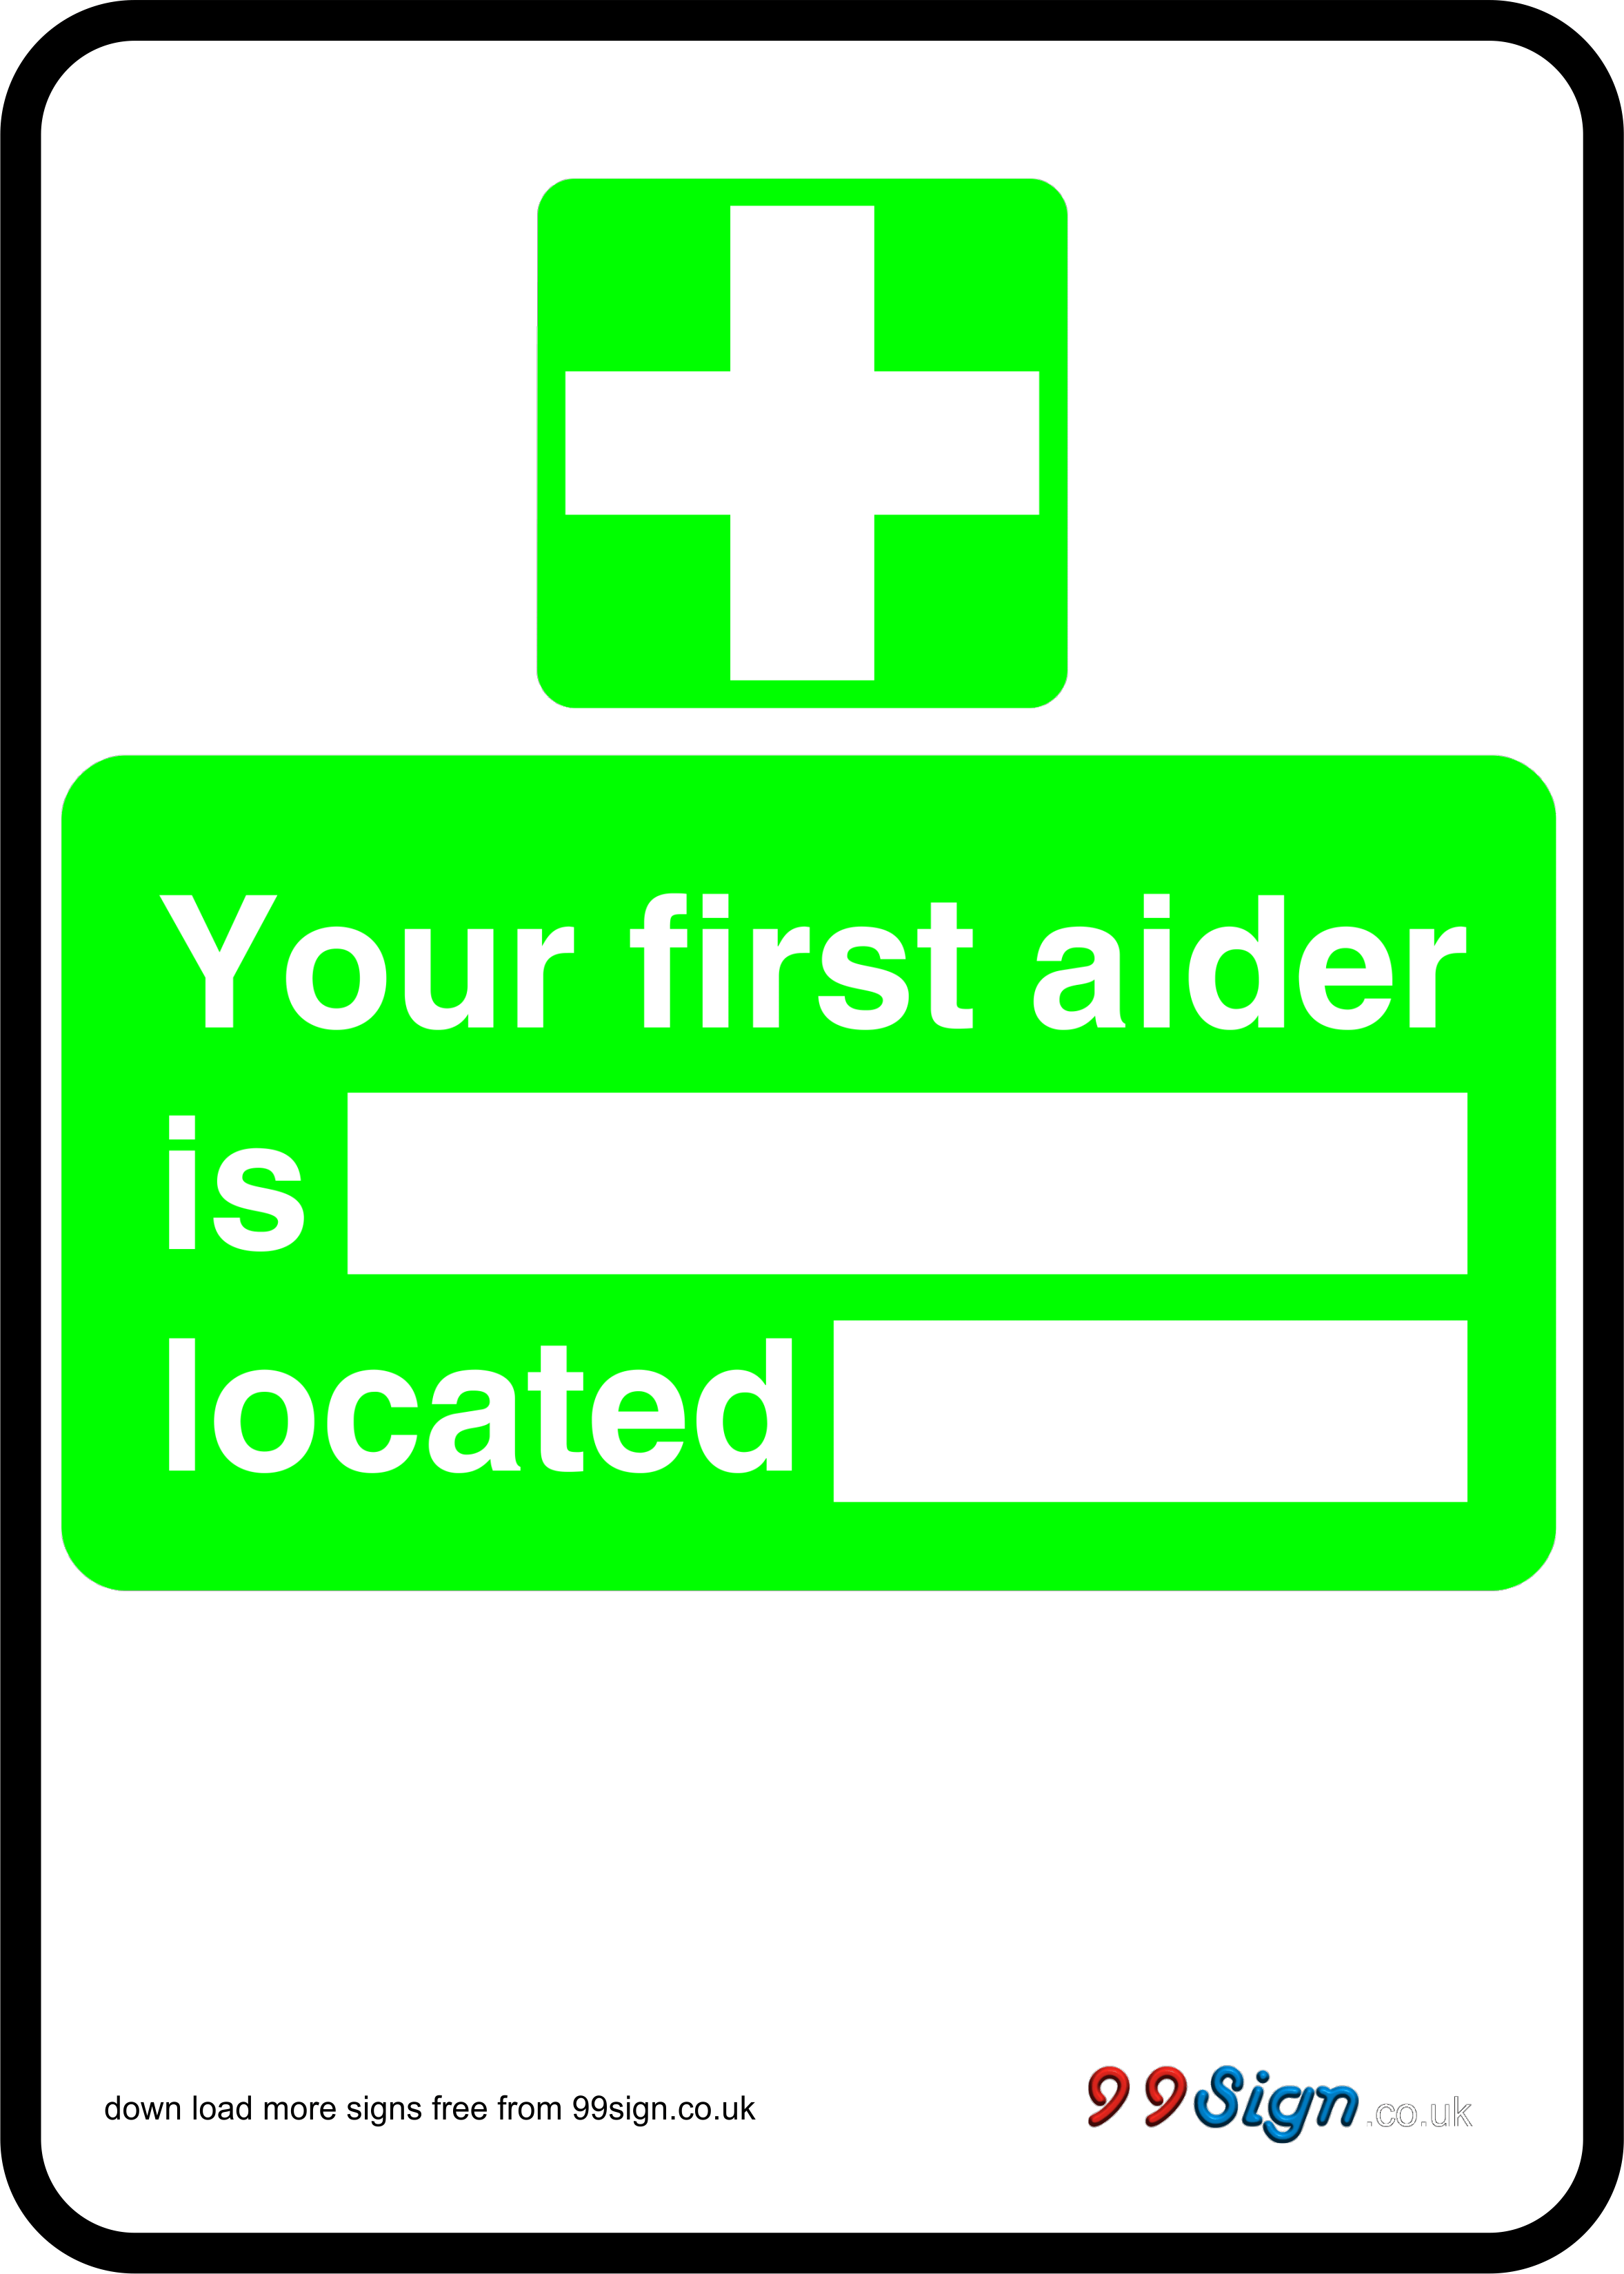 First Aid Certificate Template Free First Aid Sign Your First Aider Is  Located Free Template Clipart  First Aid Certificate Template